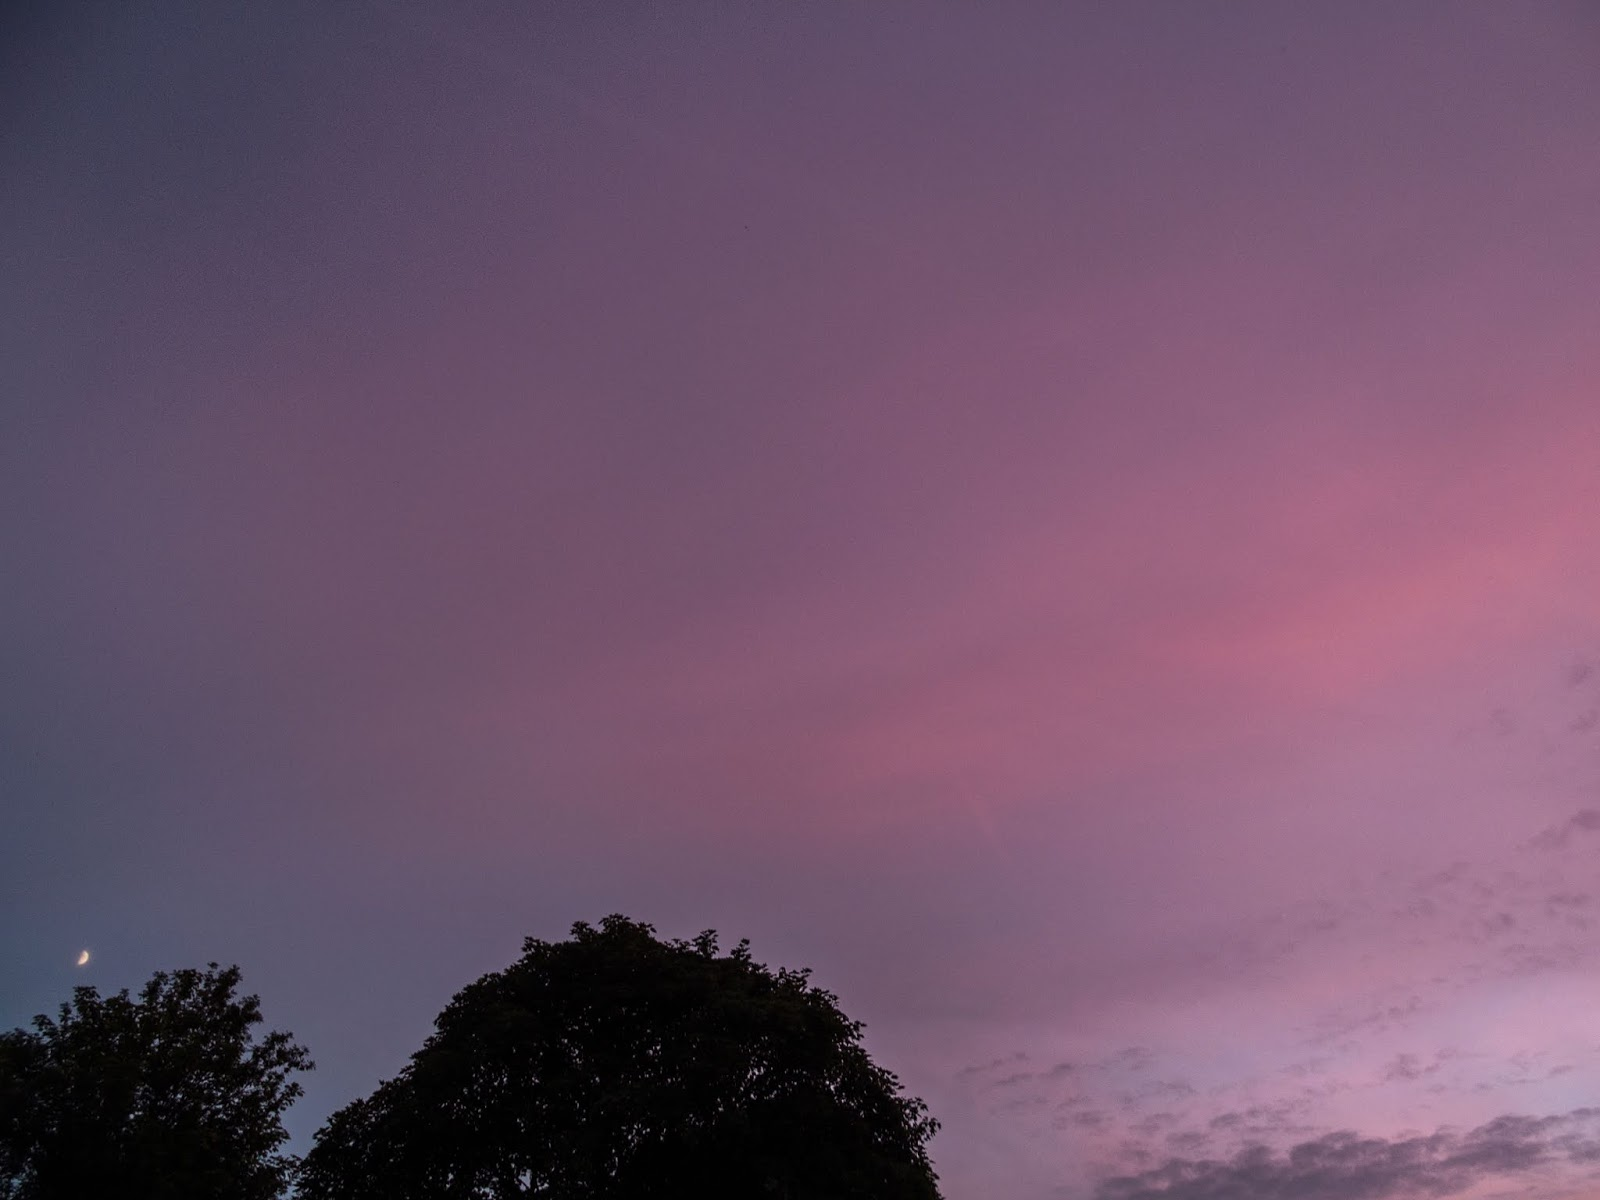 Moon rising over trees against a pink pastel sunset sky.